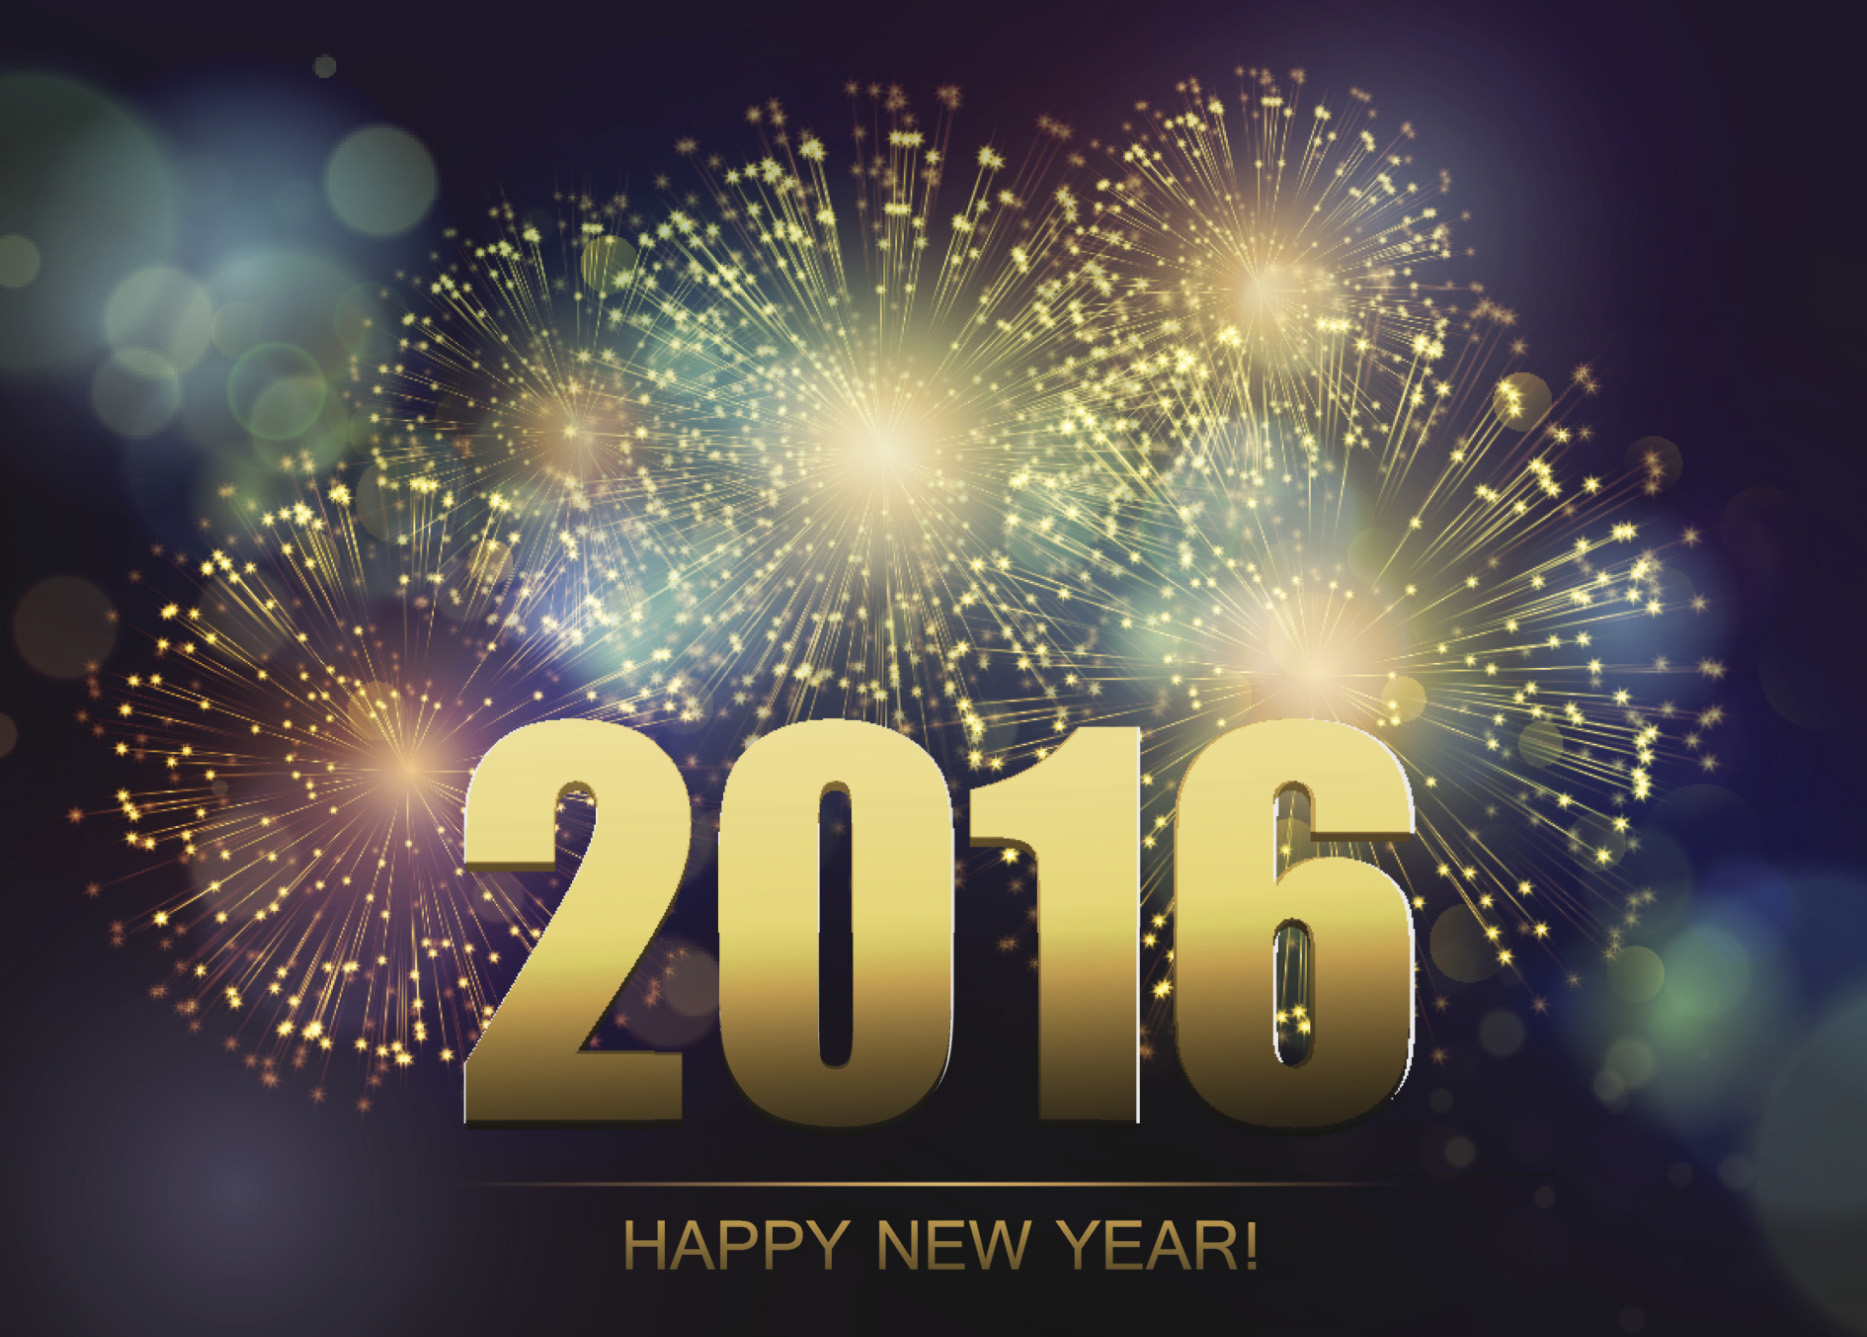 happy new year 2016 crop thinkstockphotos 4872011561